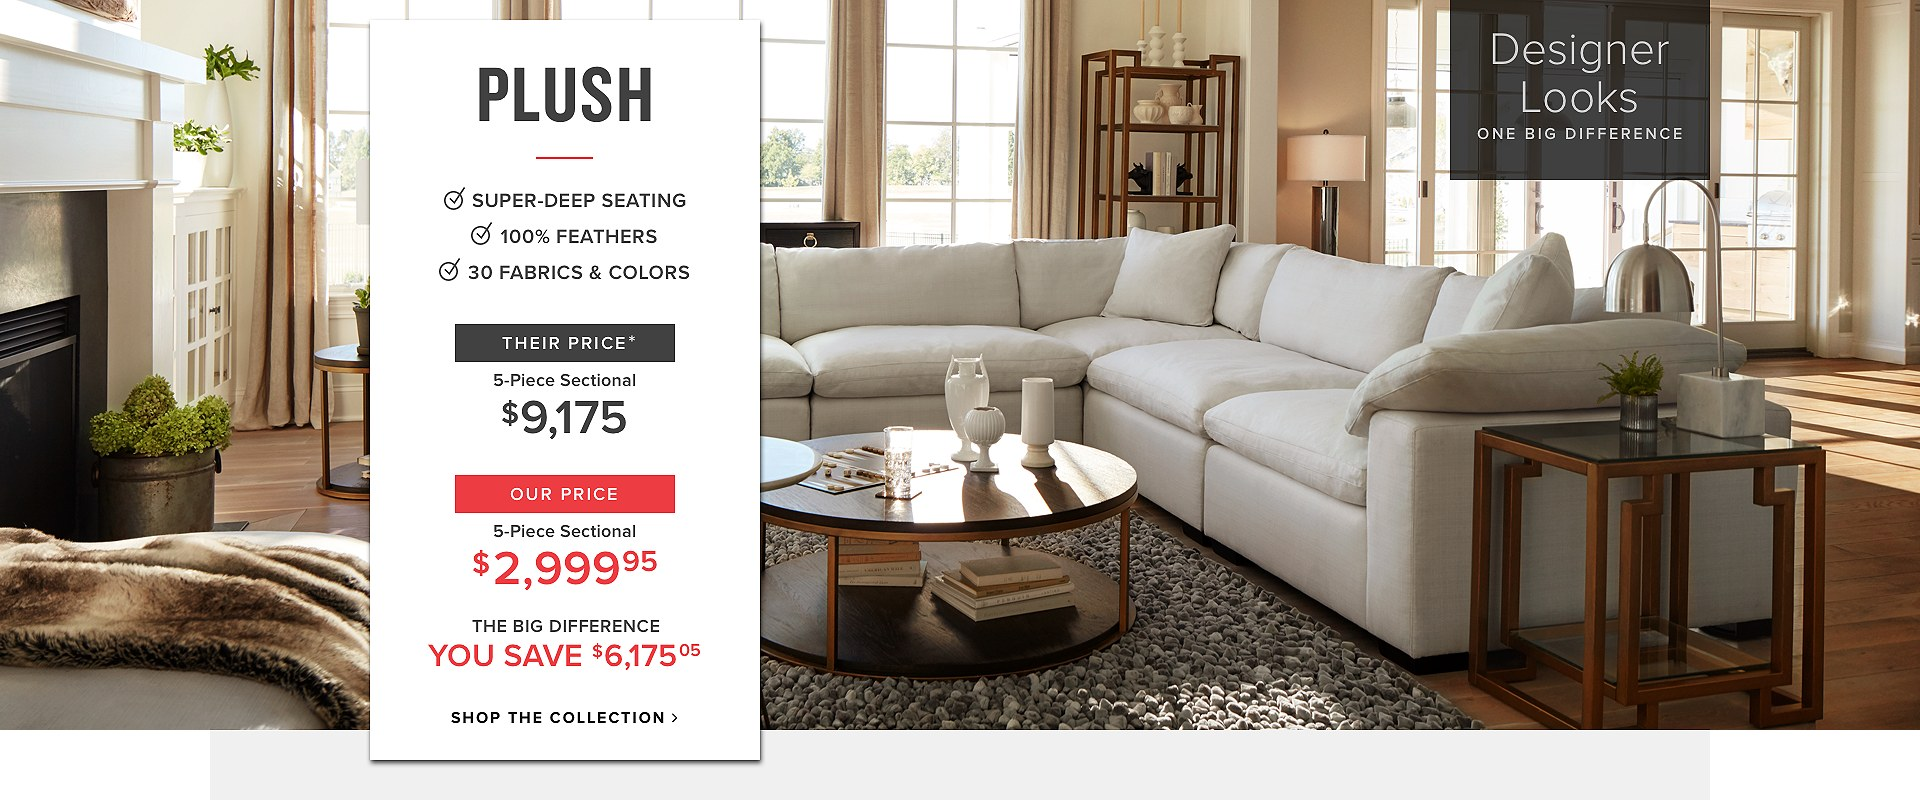 Designer Looks   One Big Difference  Featuring the Plush 5 Piece Sectional   Their. Designer Furniture at Value Prices   Value City Furniture and